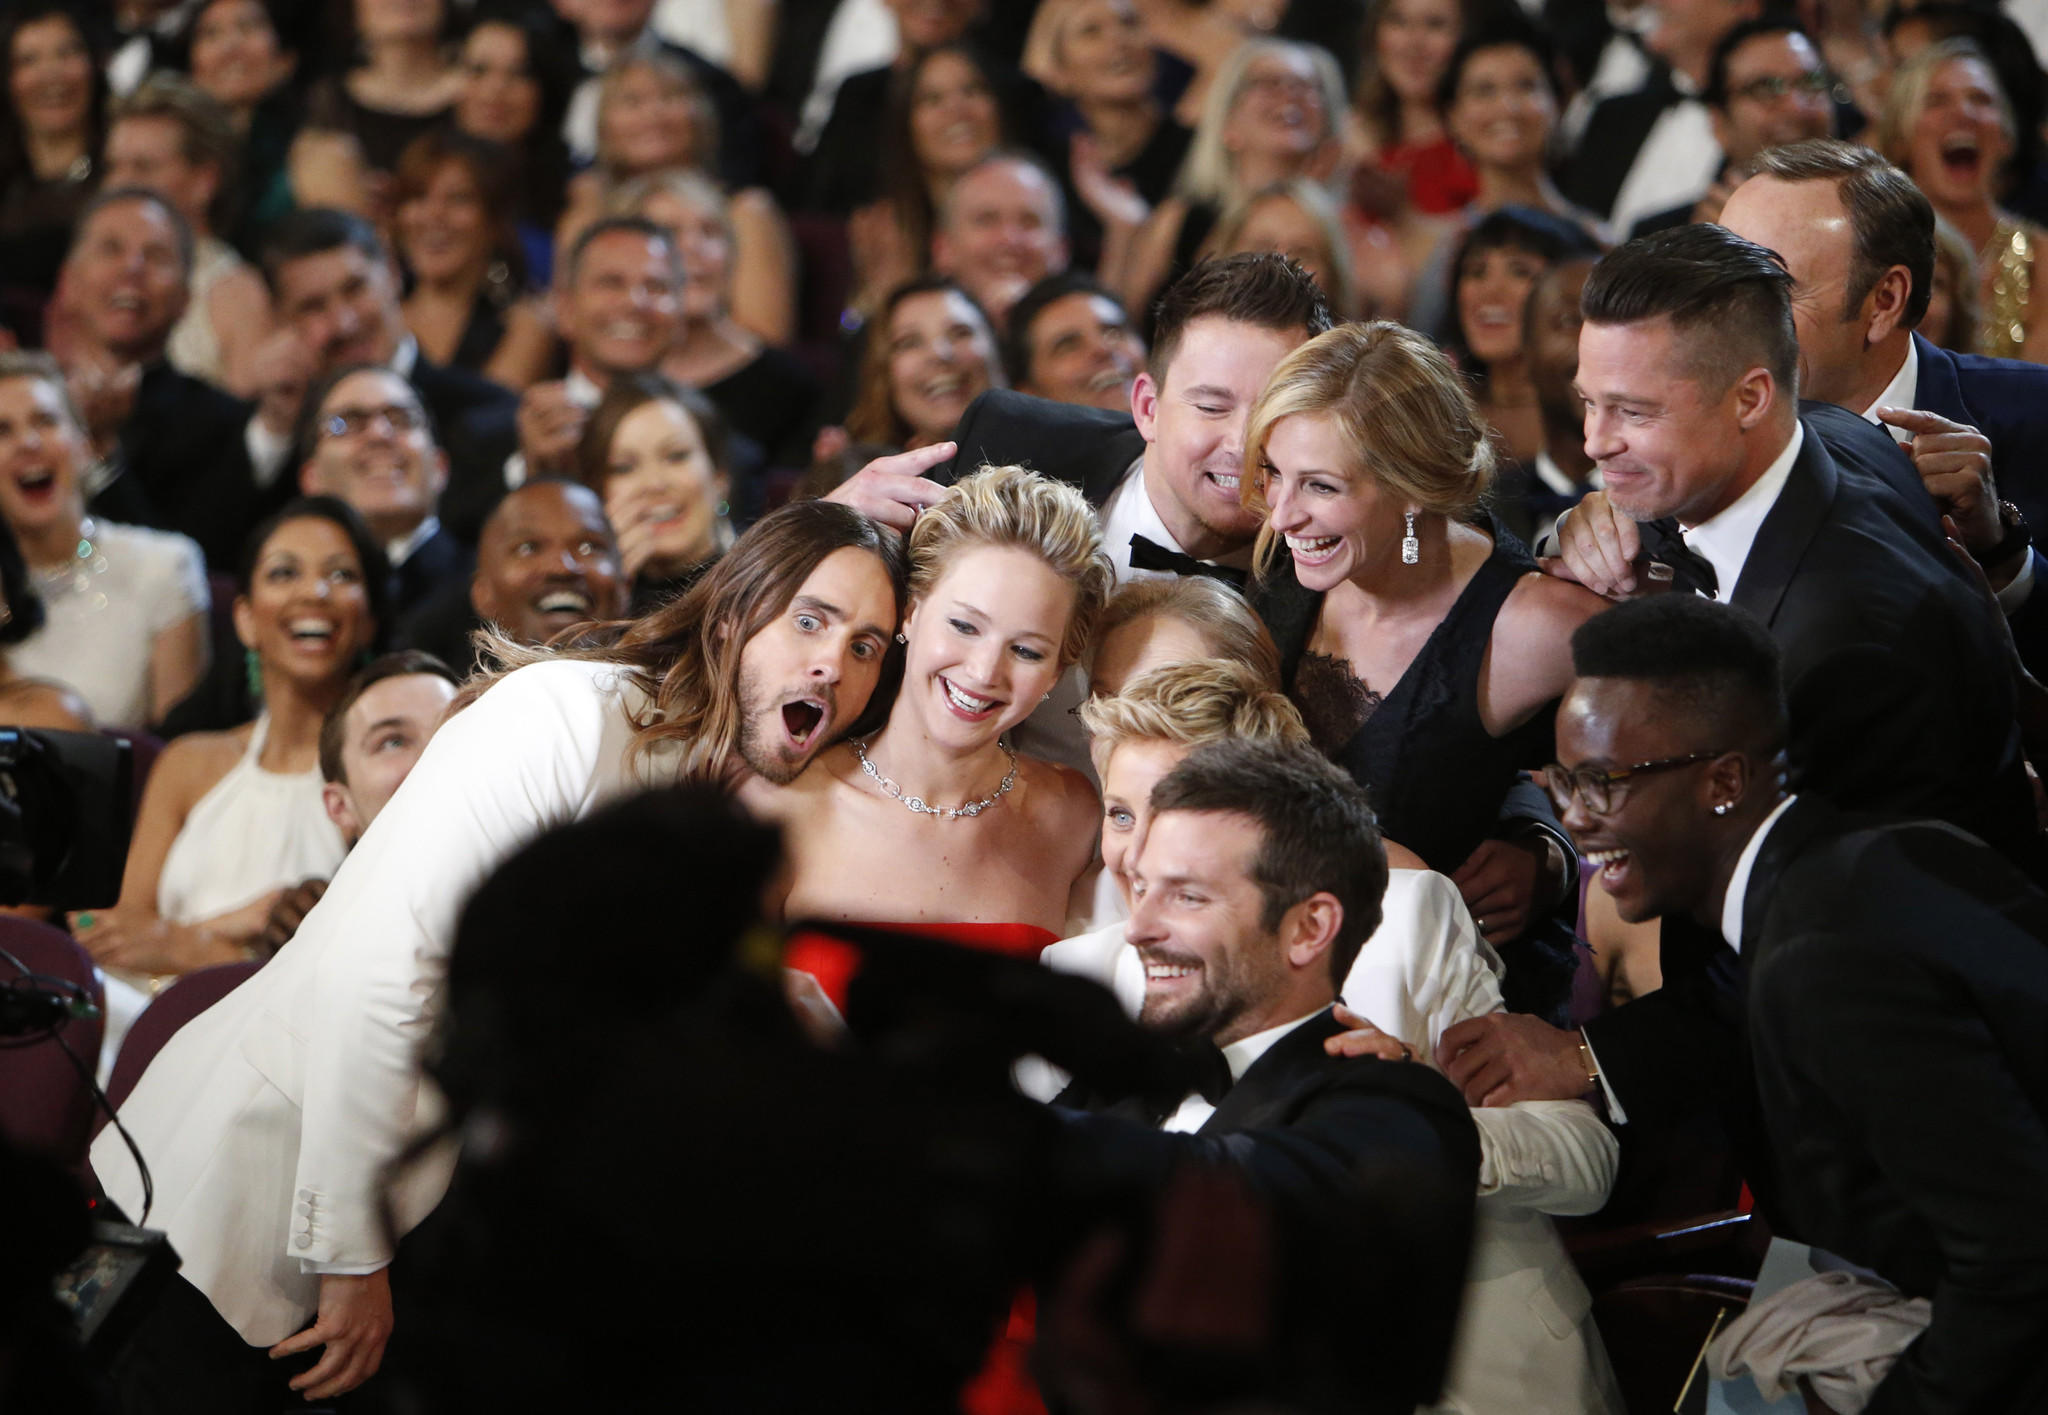 Ellen DeGeneres gathers members from the audience for a selfie, from backstage at the 86th Annual Academy Awards on Sunday at the Dolby Theatre at Hollywood & Highland Center in Hollywood.